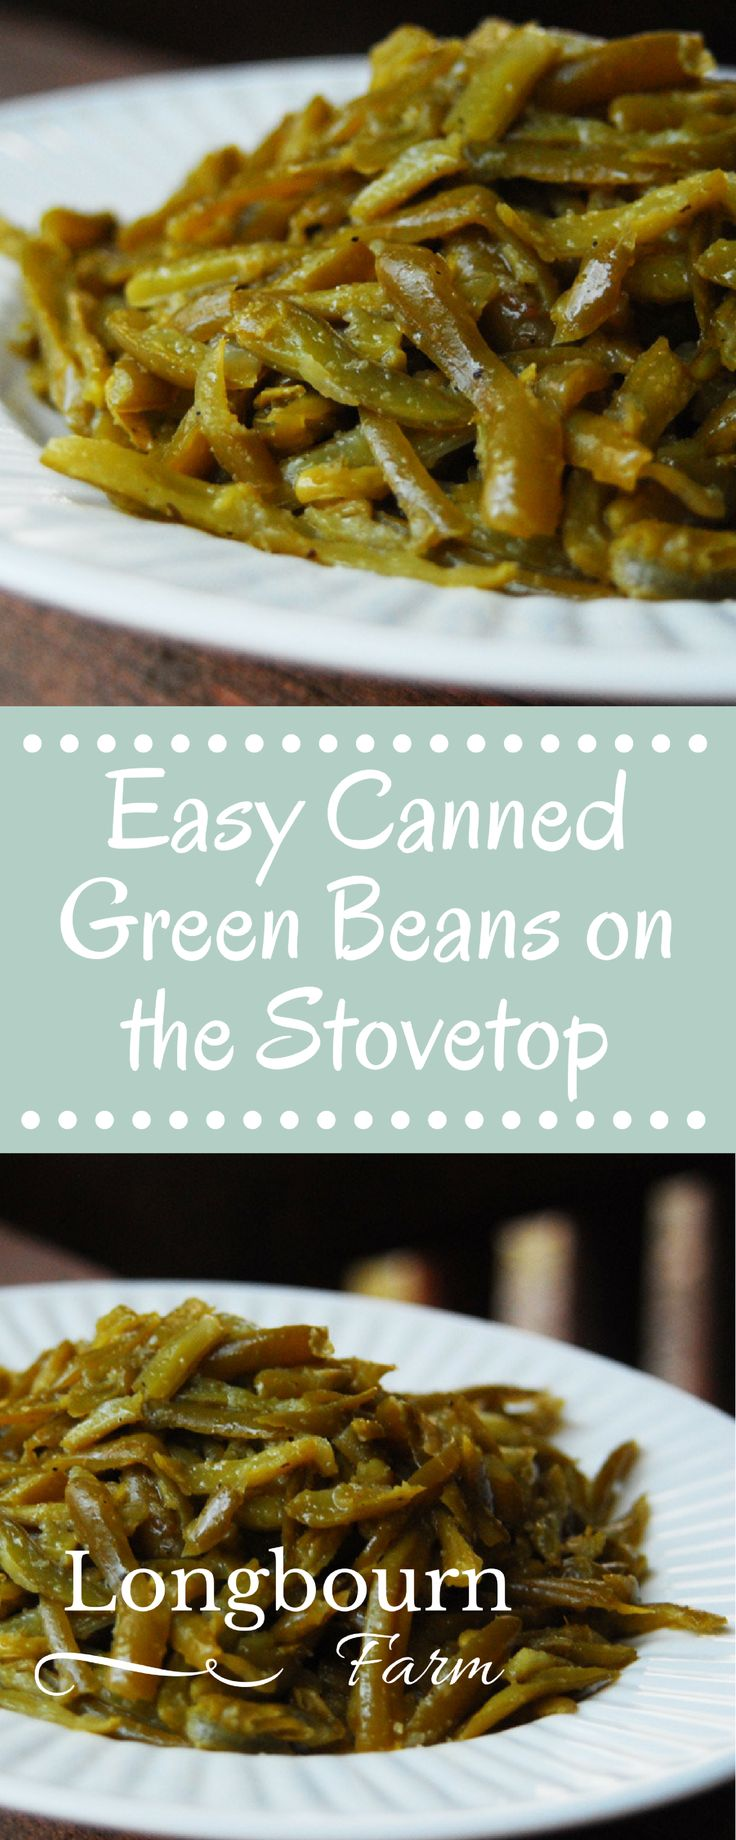 This easy canned green bean recipe is a delicious way to use those green beans in your pantry! Making green beans from a can can be delicious!! Try it today